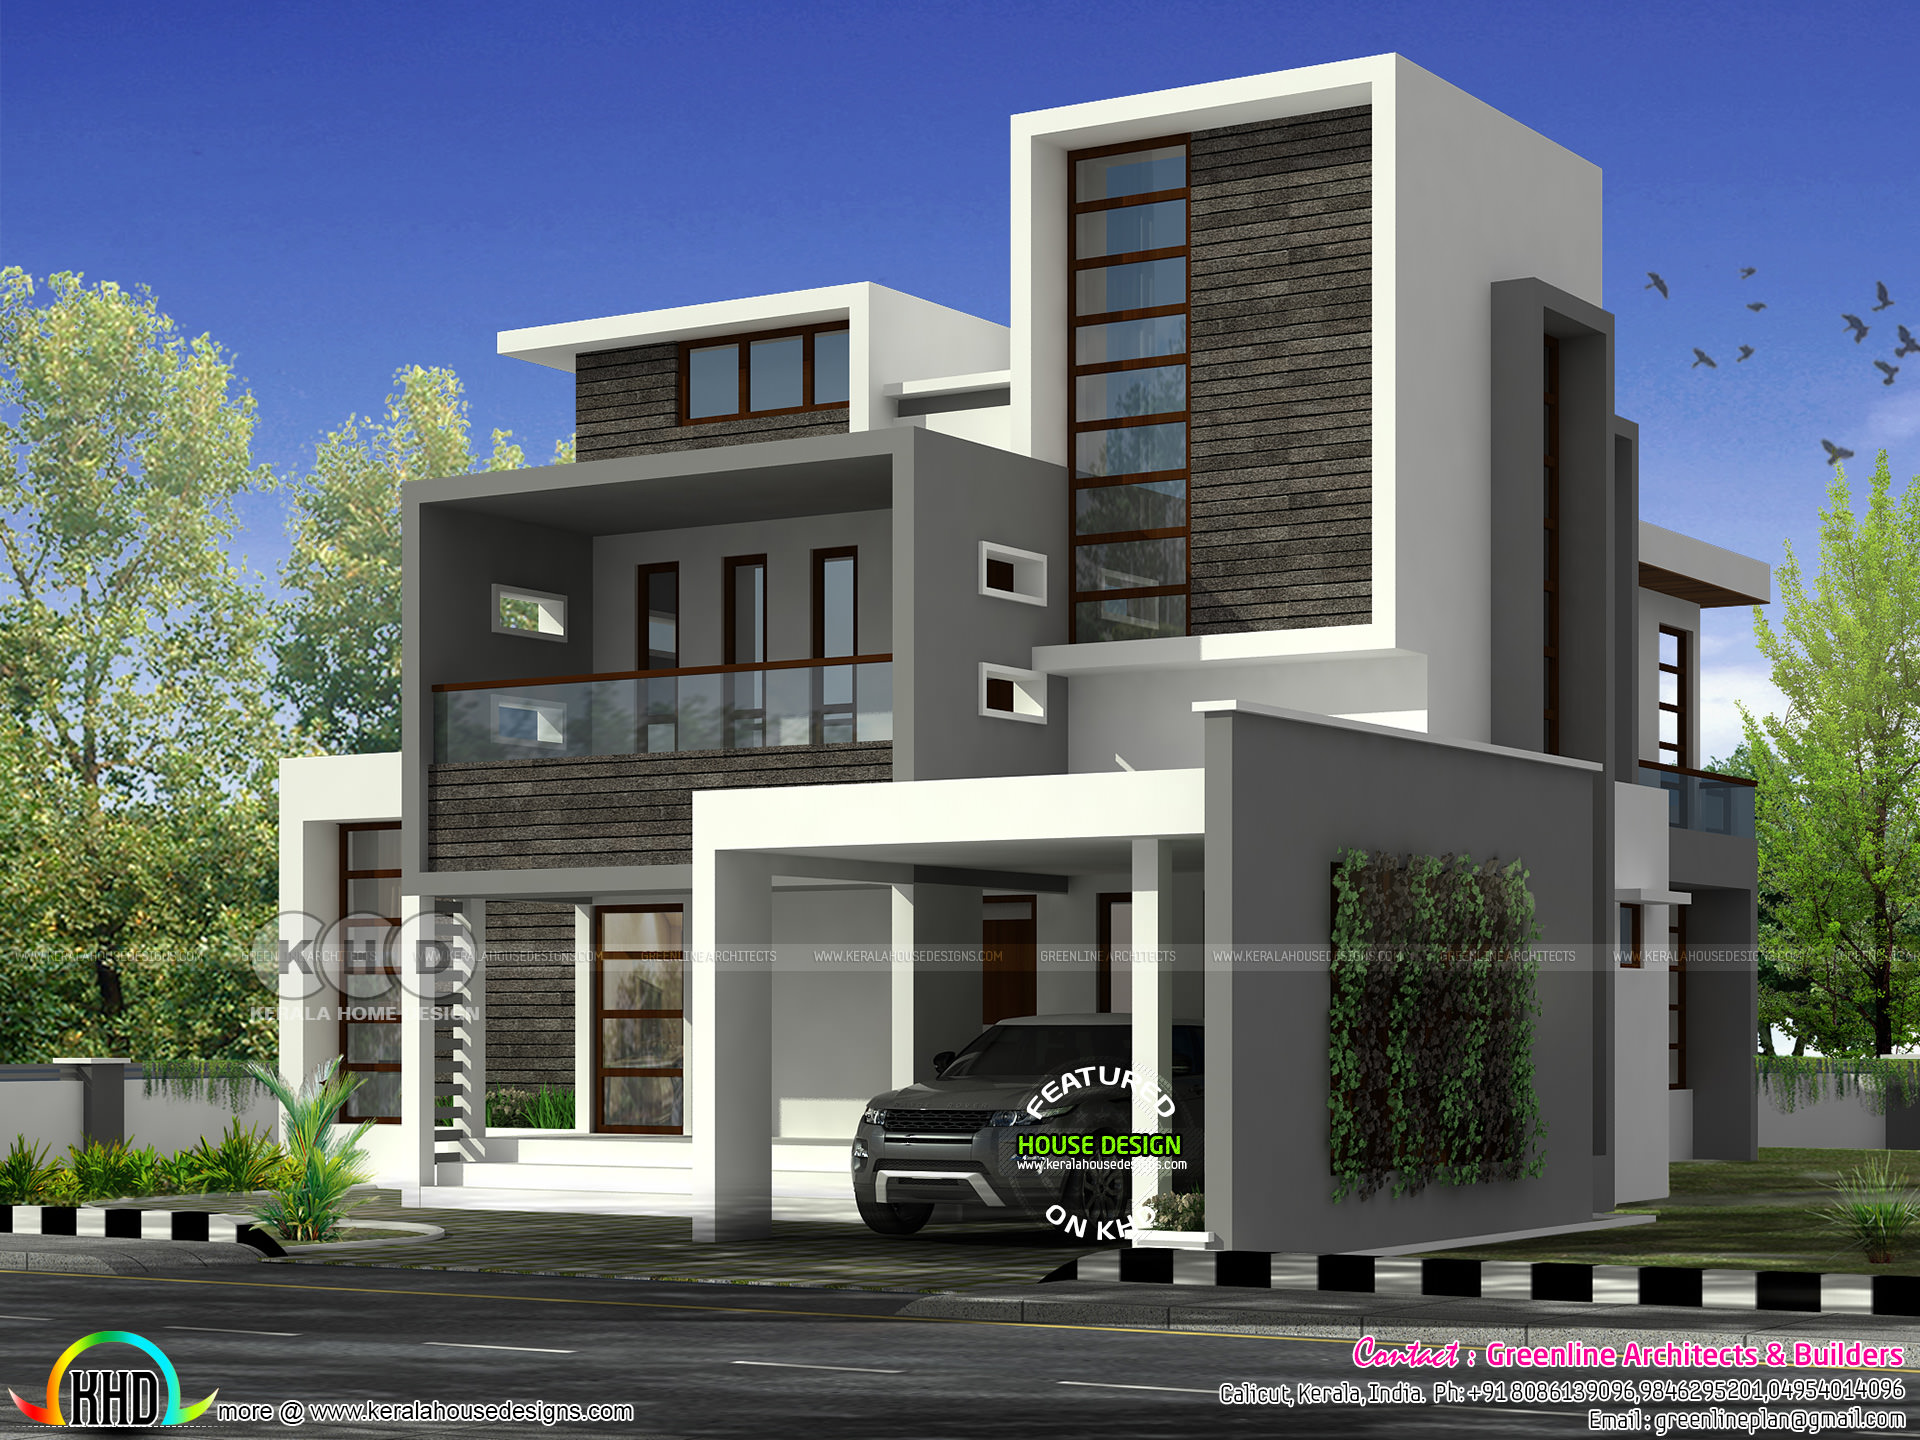 Roof Design Ideas: 4 Bedroom Flat Roof Home 3001 Sq-ft